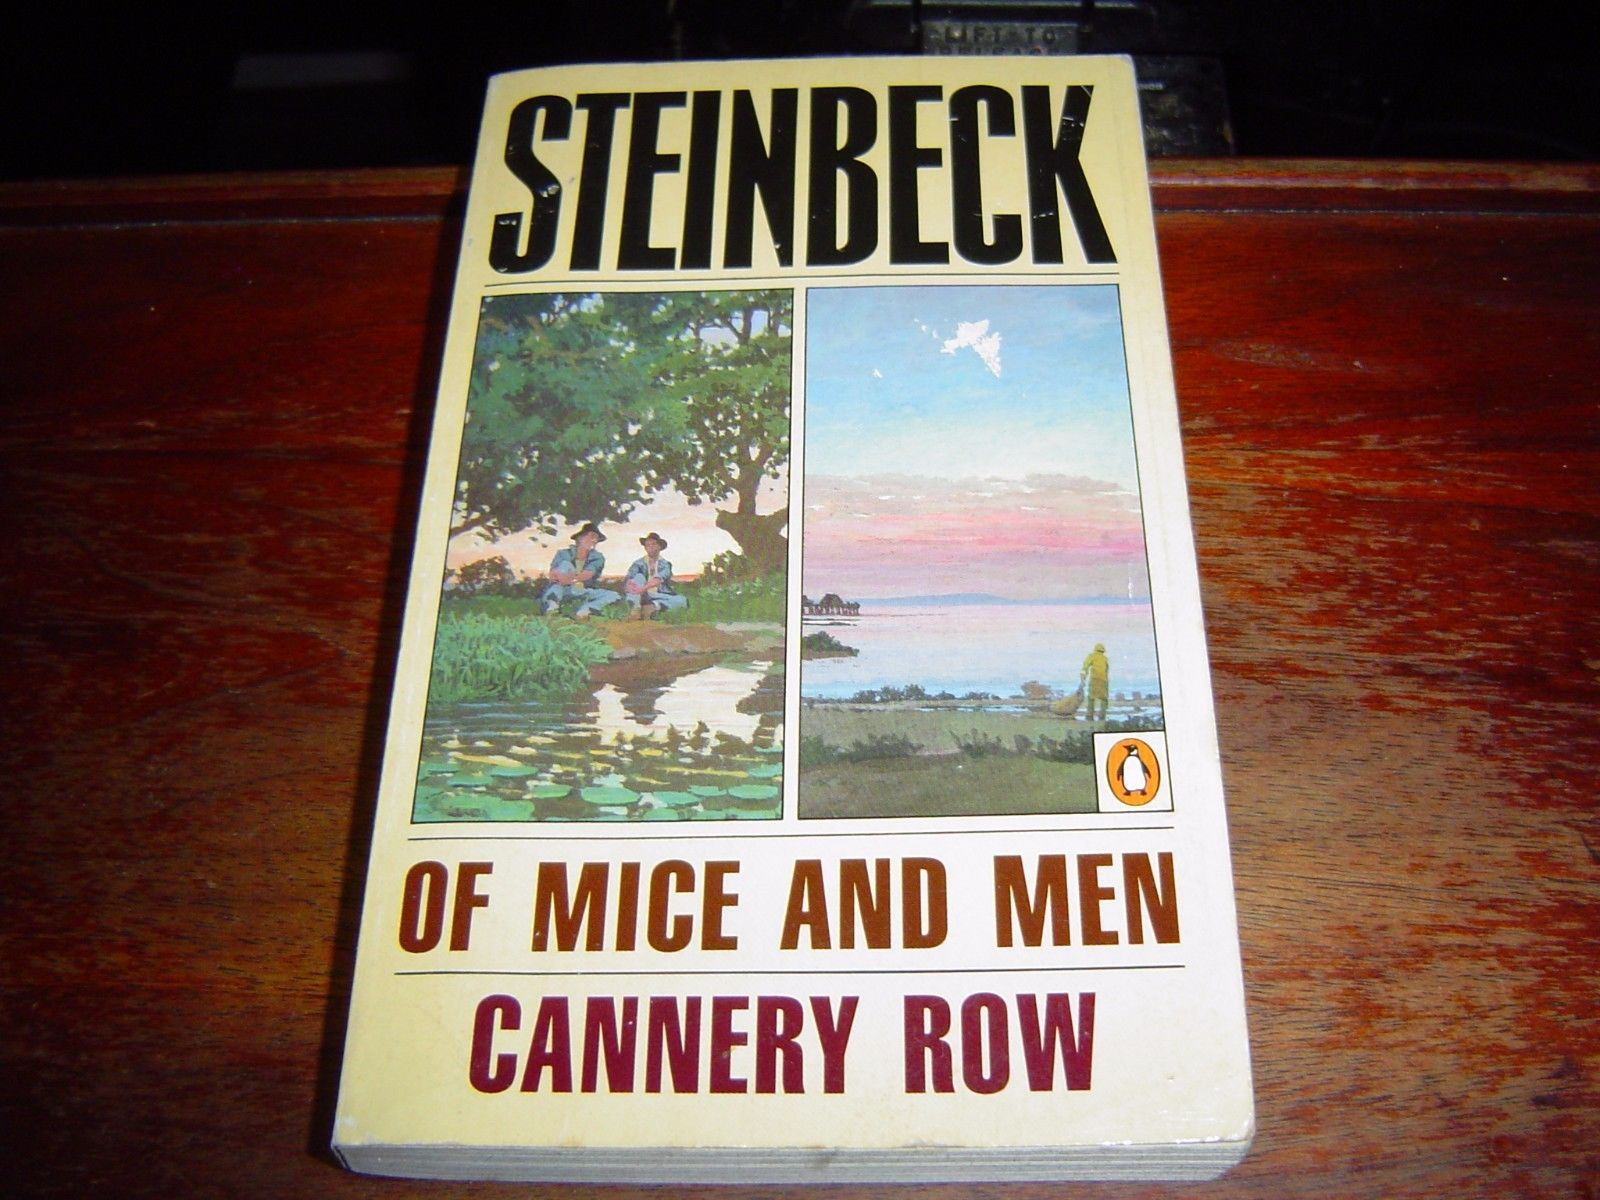 a short analysis of cannery row by john steinbeck Cannery row is a novel written by the famous american author john steinbeck and published in 1945 the novel was adapted into a film in 1982 starring nick nolte.